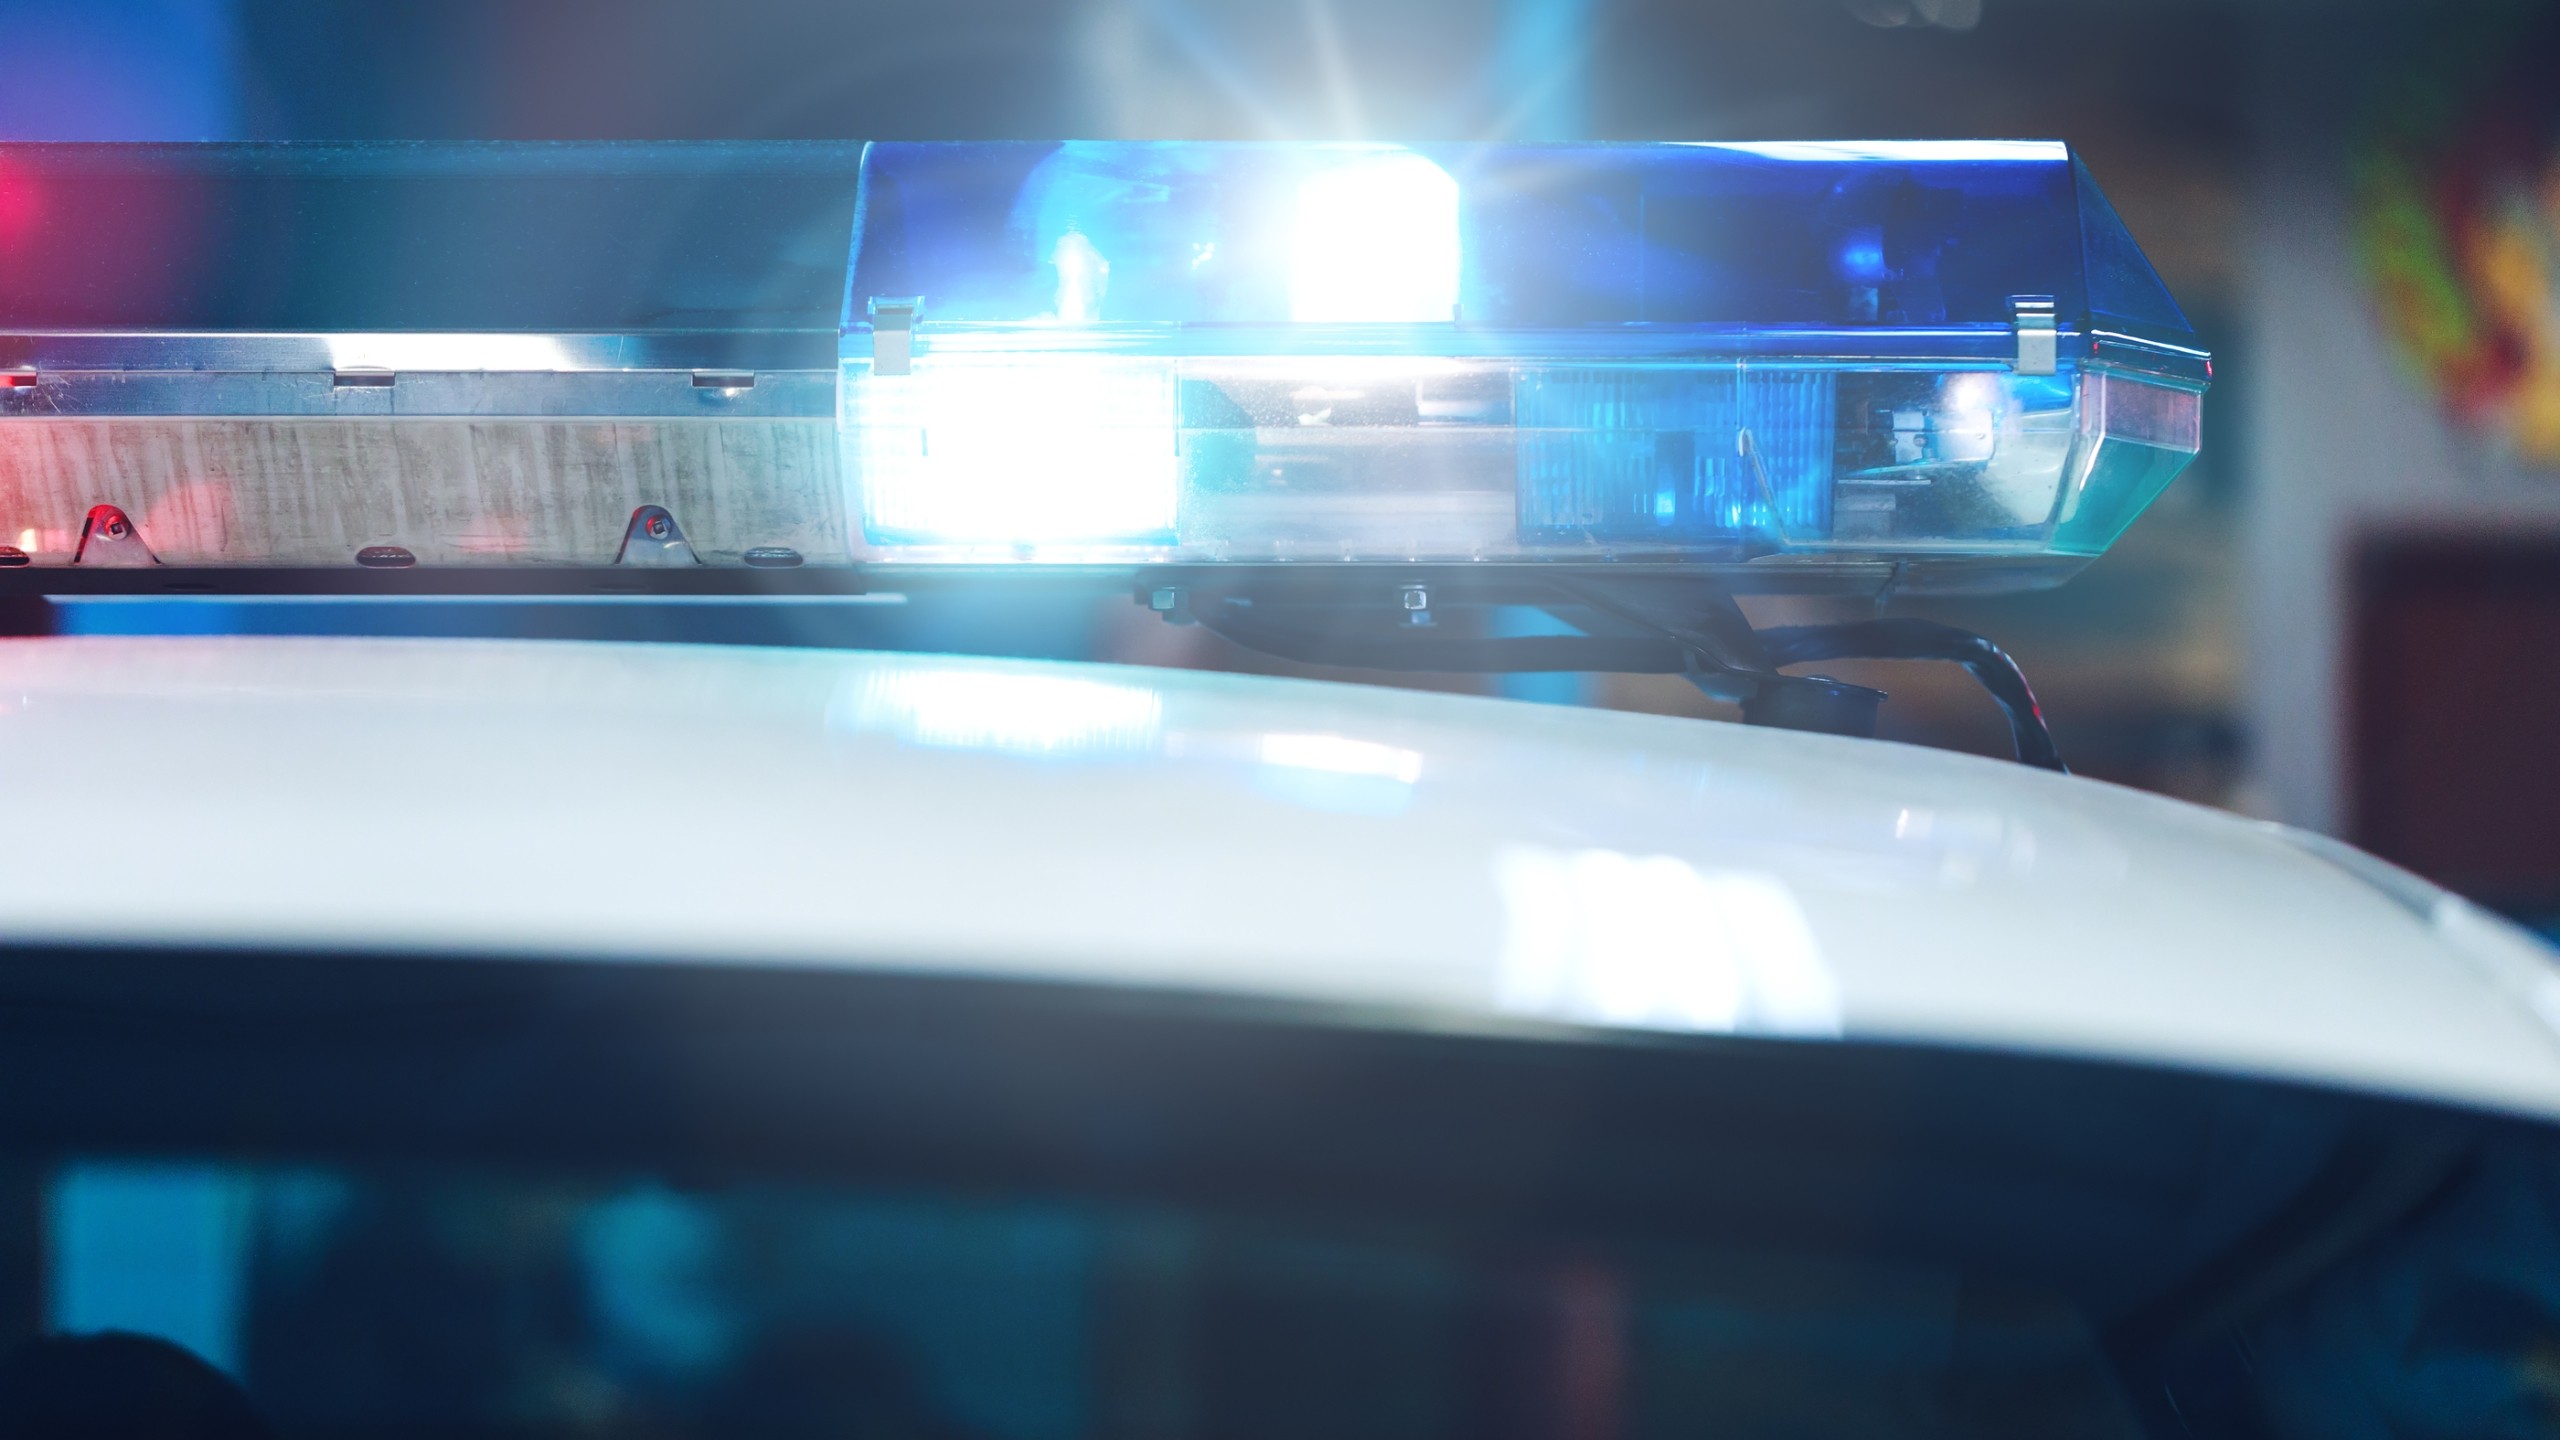 Blue Siren Flasher On The Police Car At Night. Siren On Police C_1558538484864